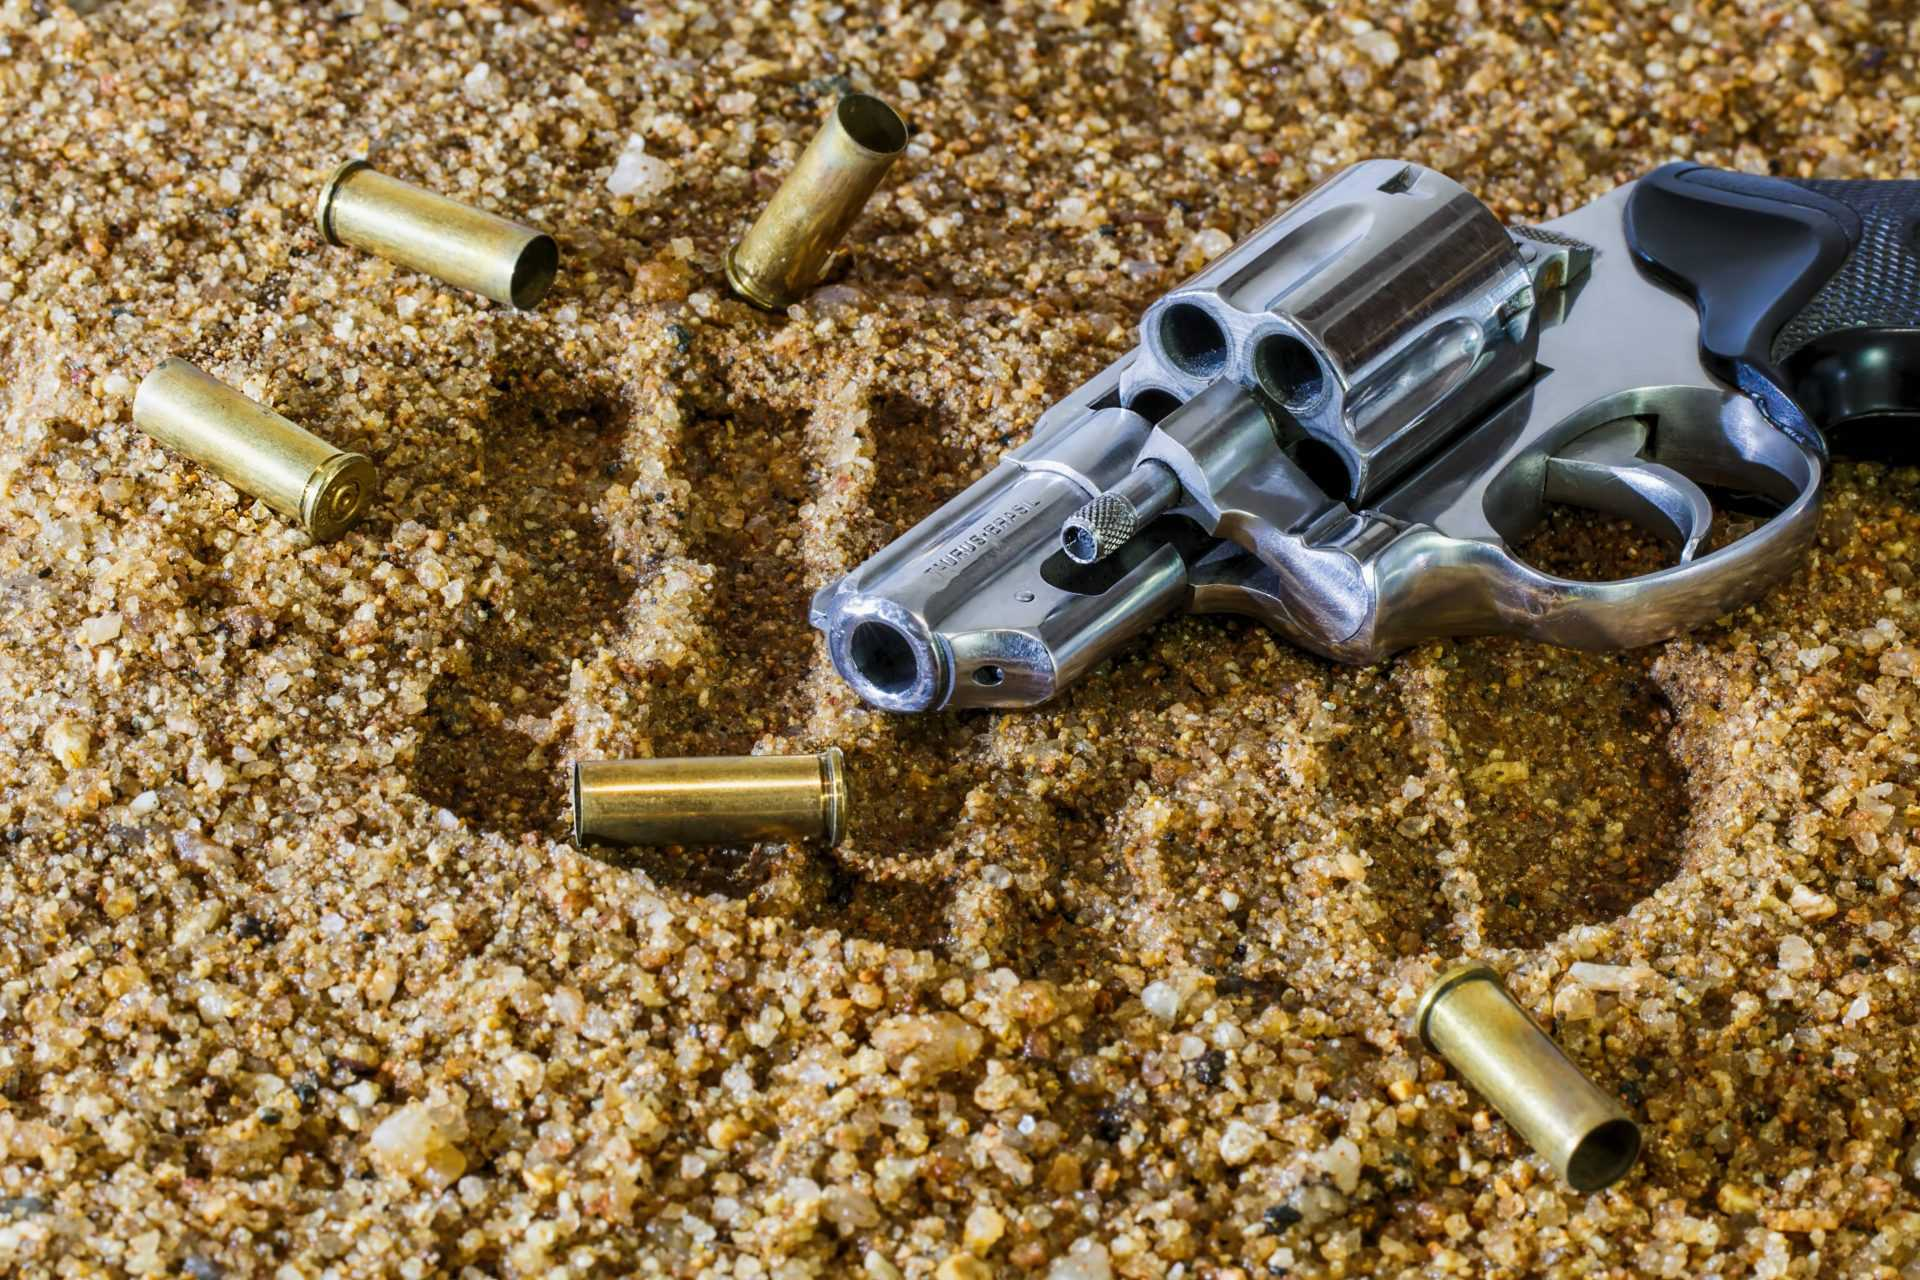 The growing need for gun control